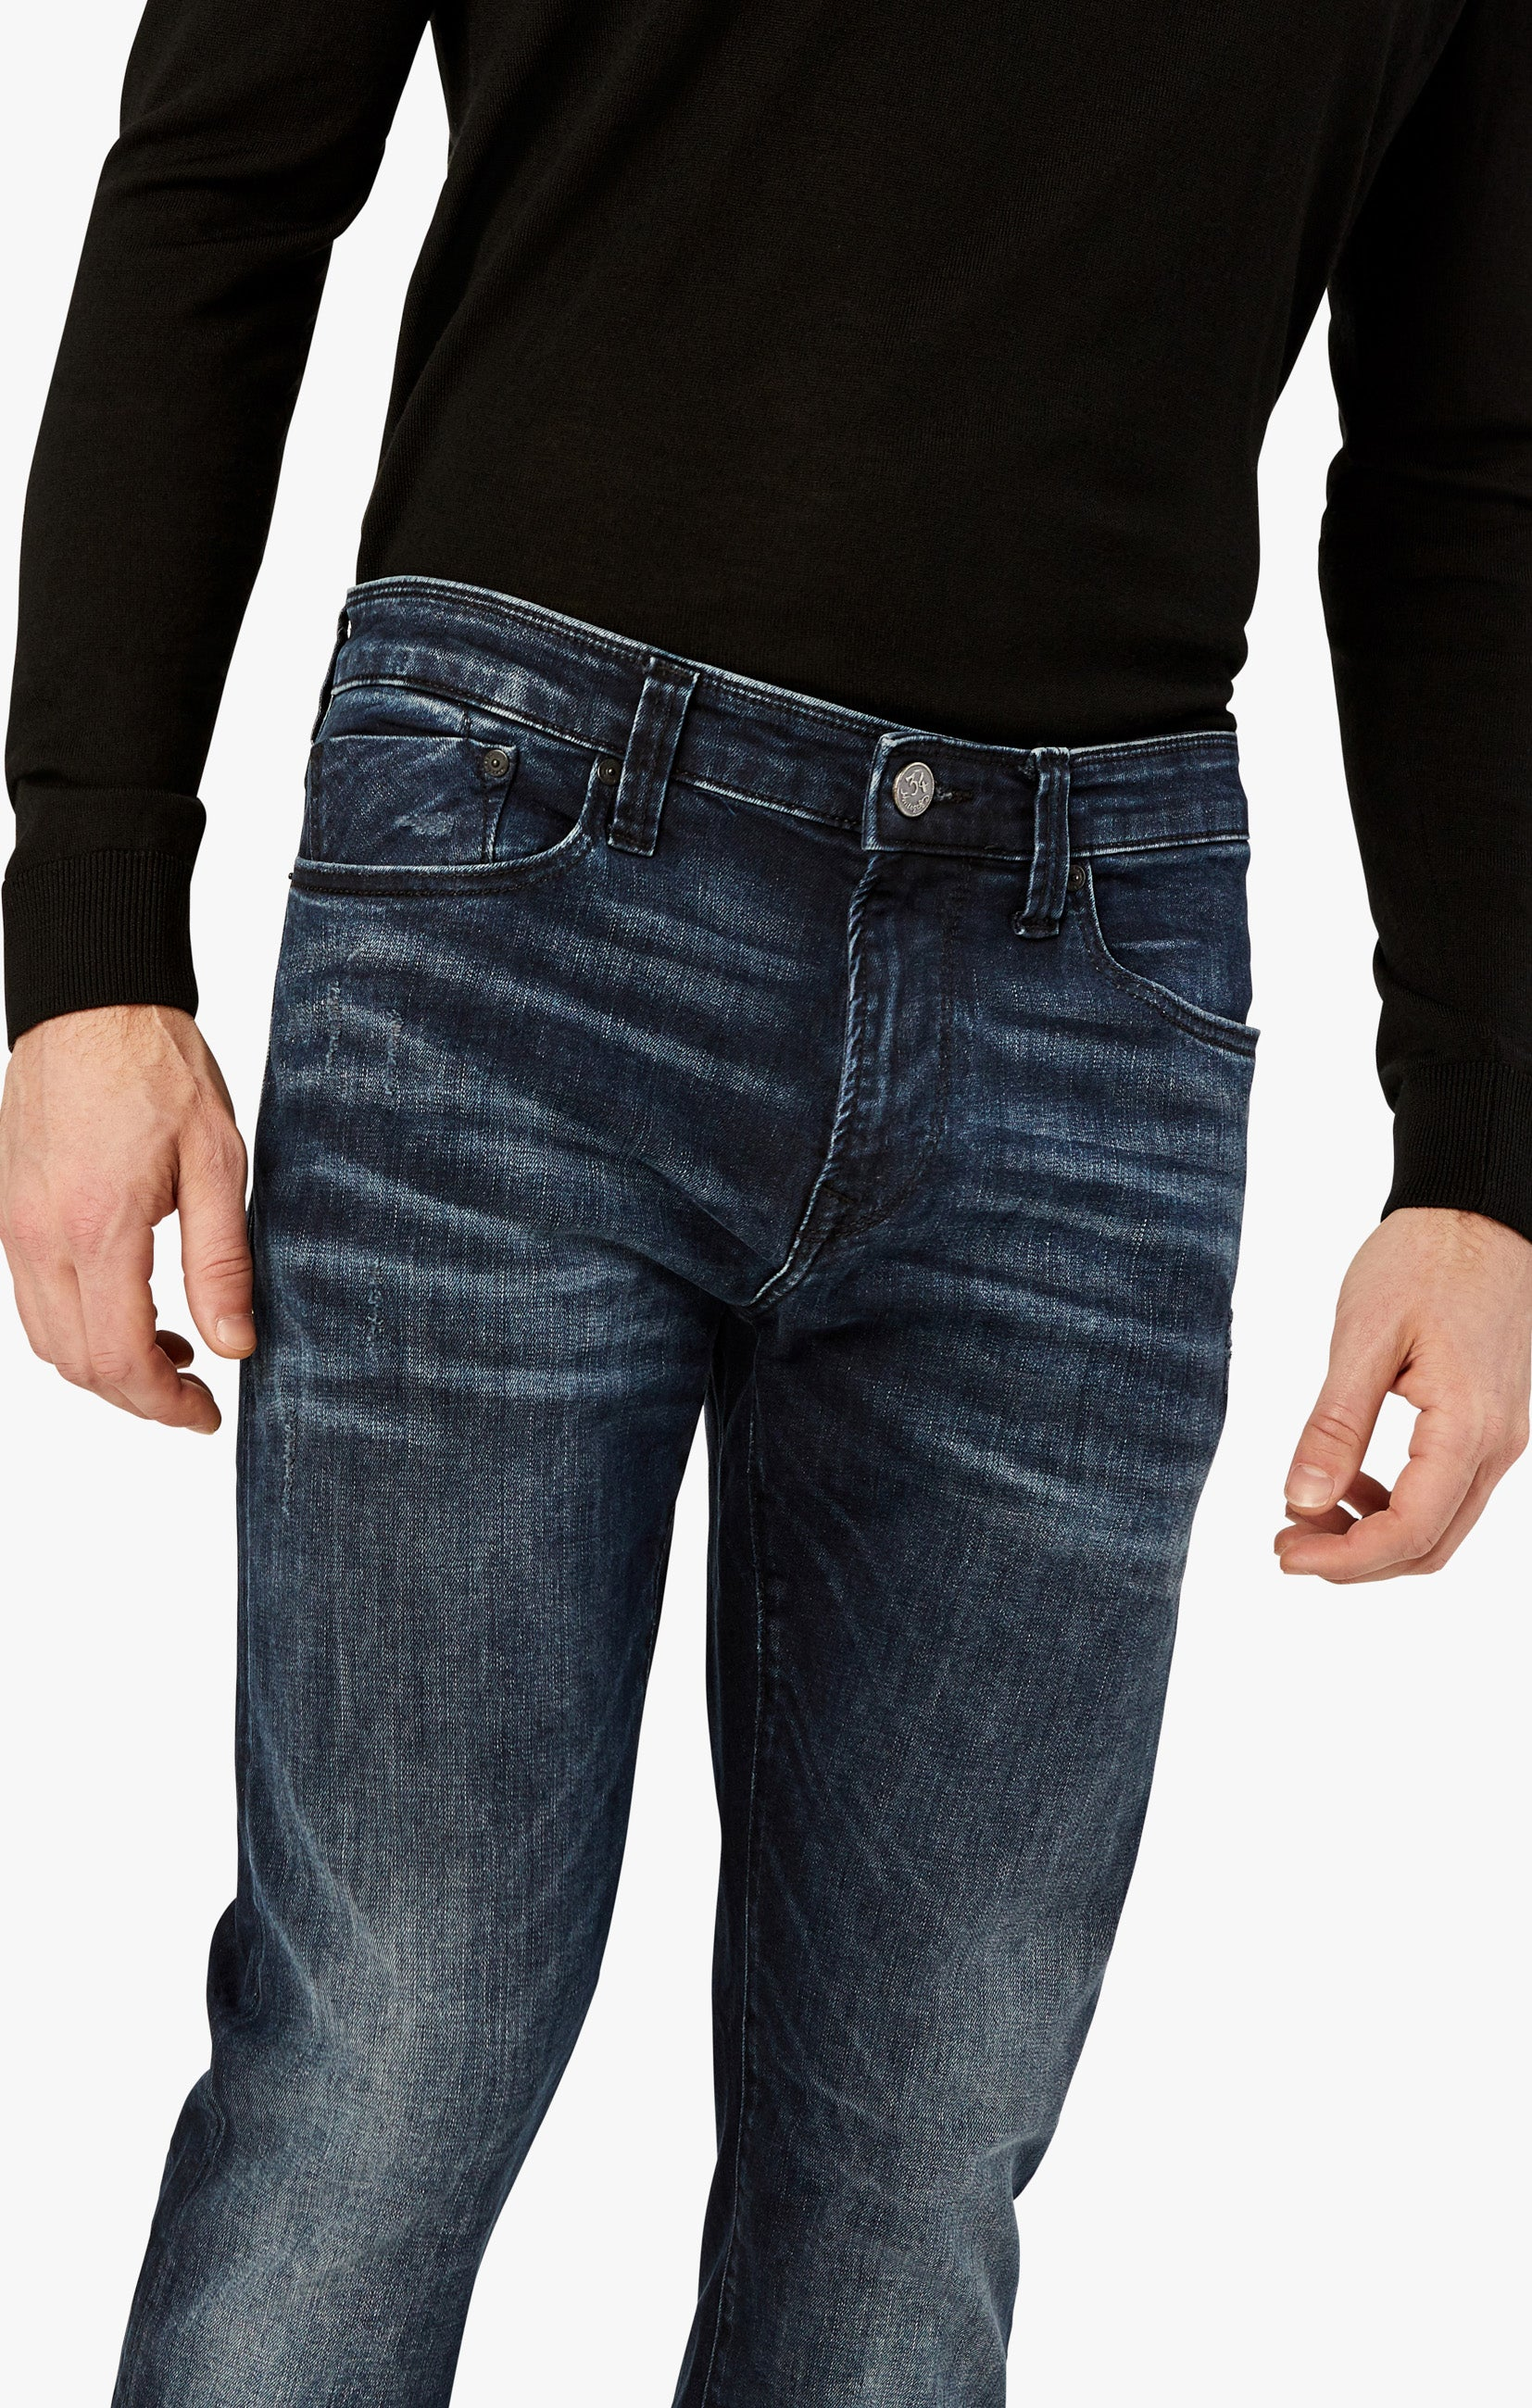 Calm Skinny Leg Jeans In Deep Authentic Image 6